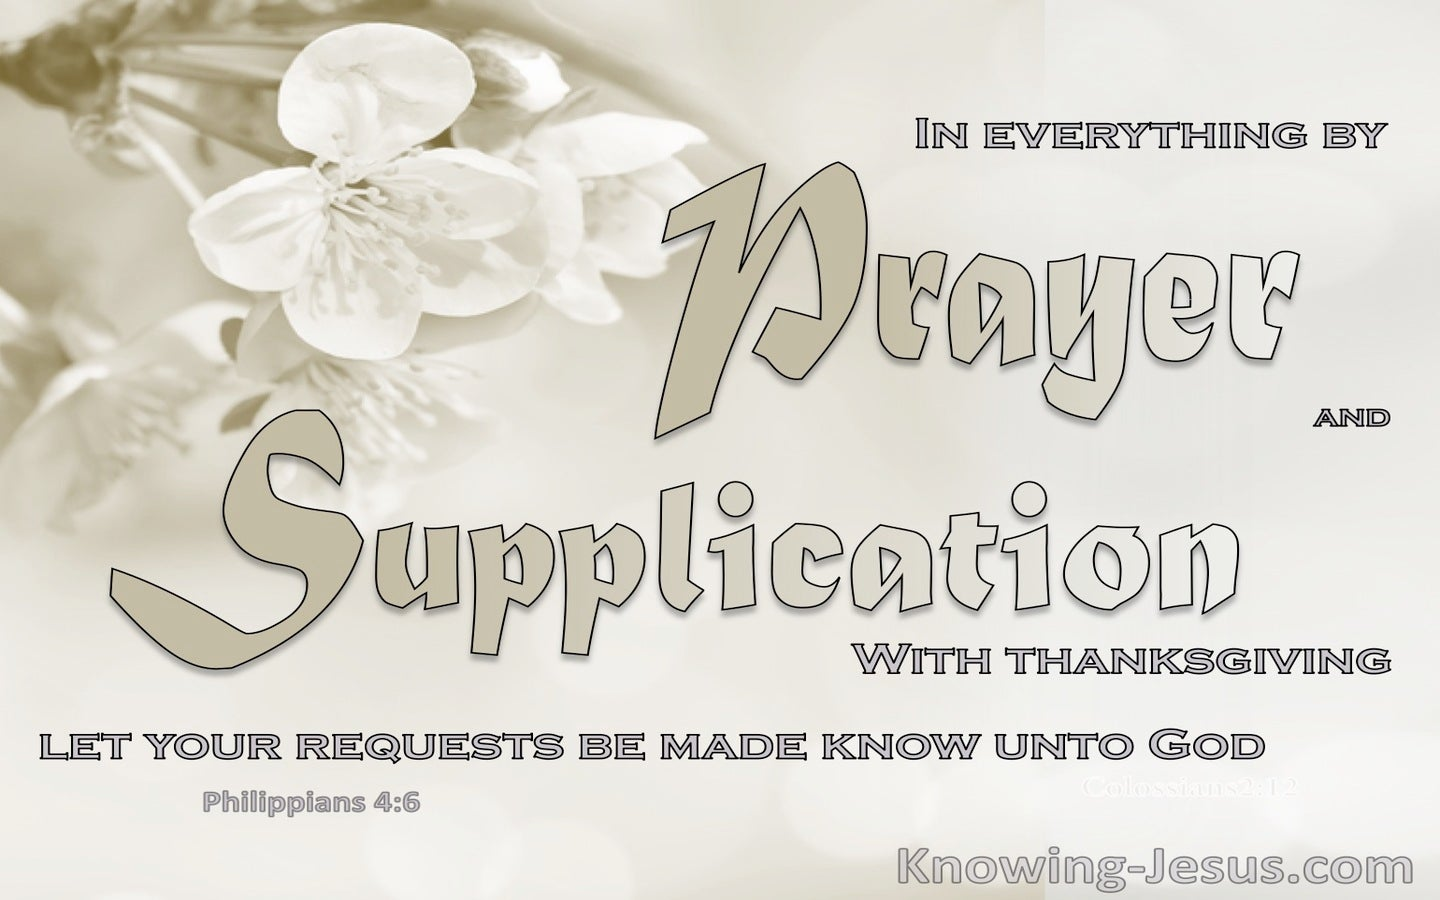 Philippians 4:6 Let Us Pray (devotional)03:14 (beige)